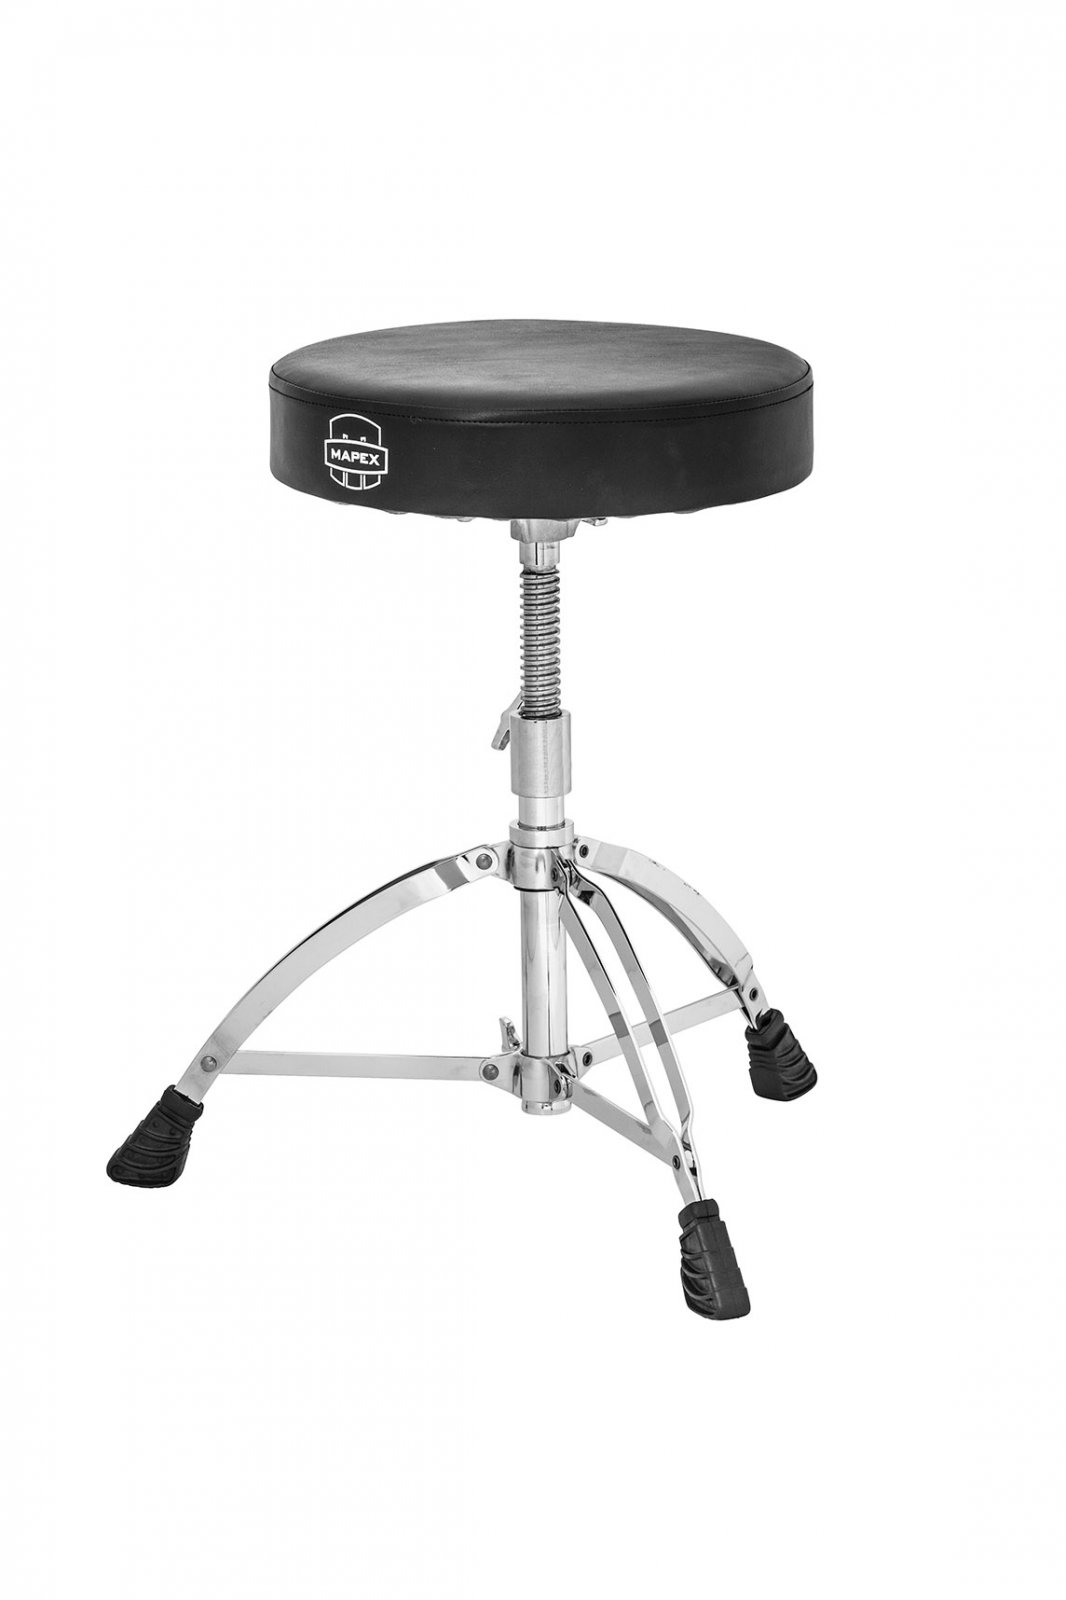 Mapex T561A Drum Throne - Double-braced, Round-seat, Spindle height adjust